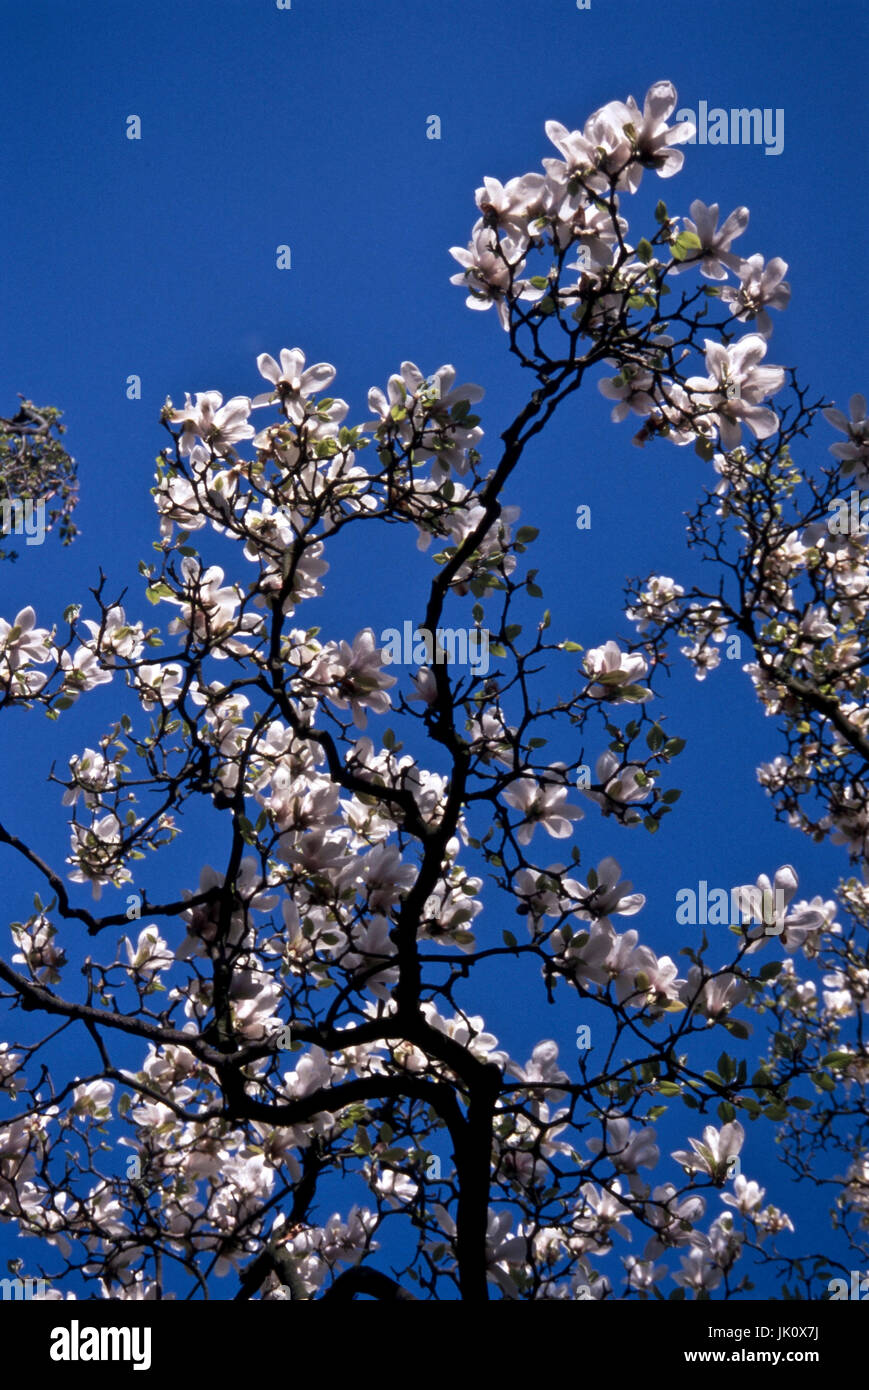 tree top of a blossoming magnolia against the blue sky. treetop of a flowering tulip-magnolia., baumkrone einer Stock Photo